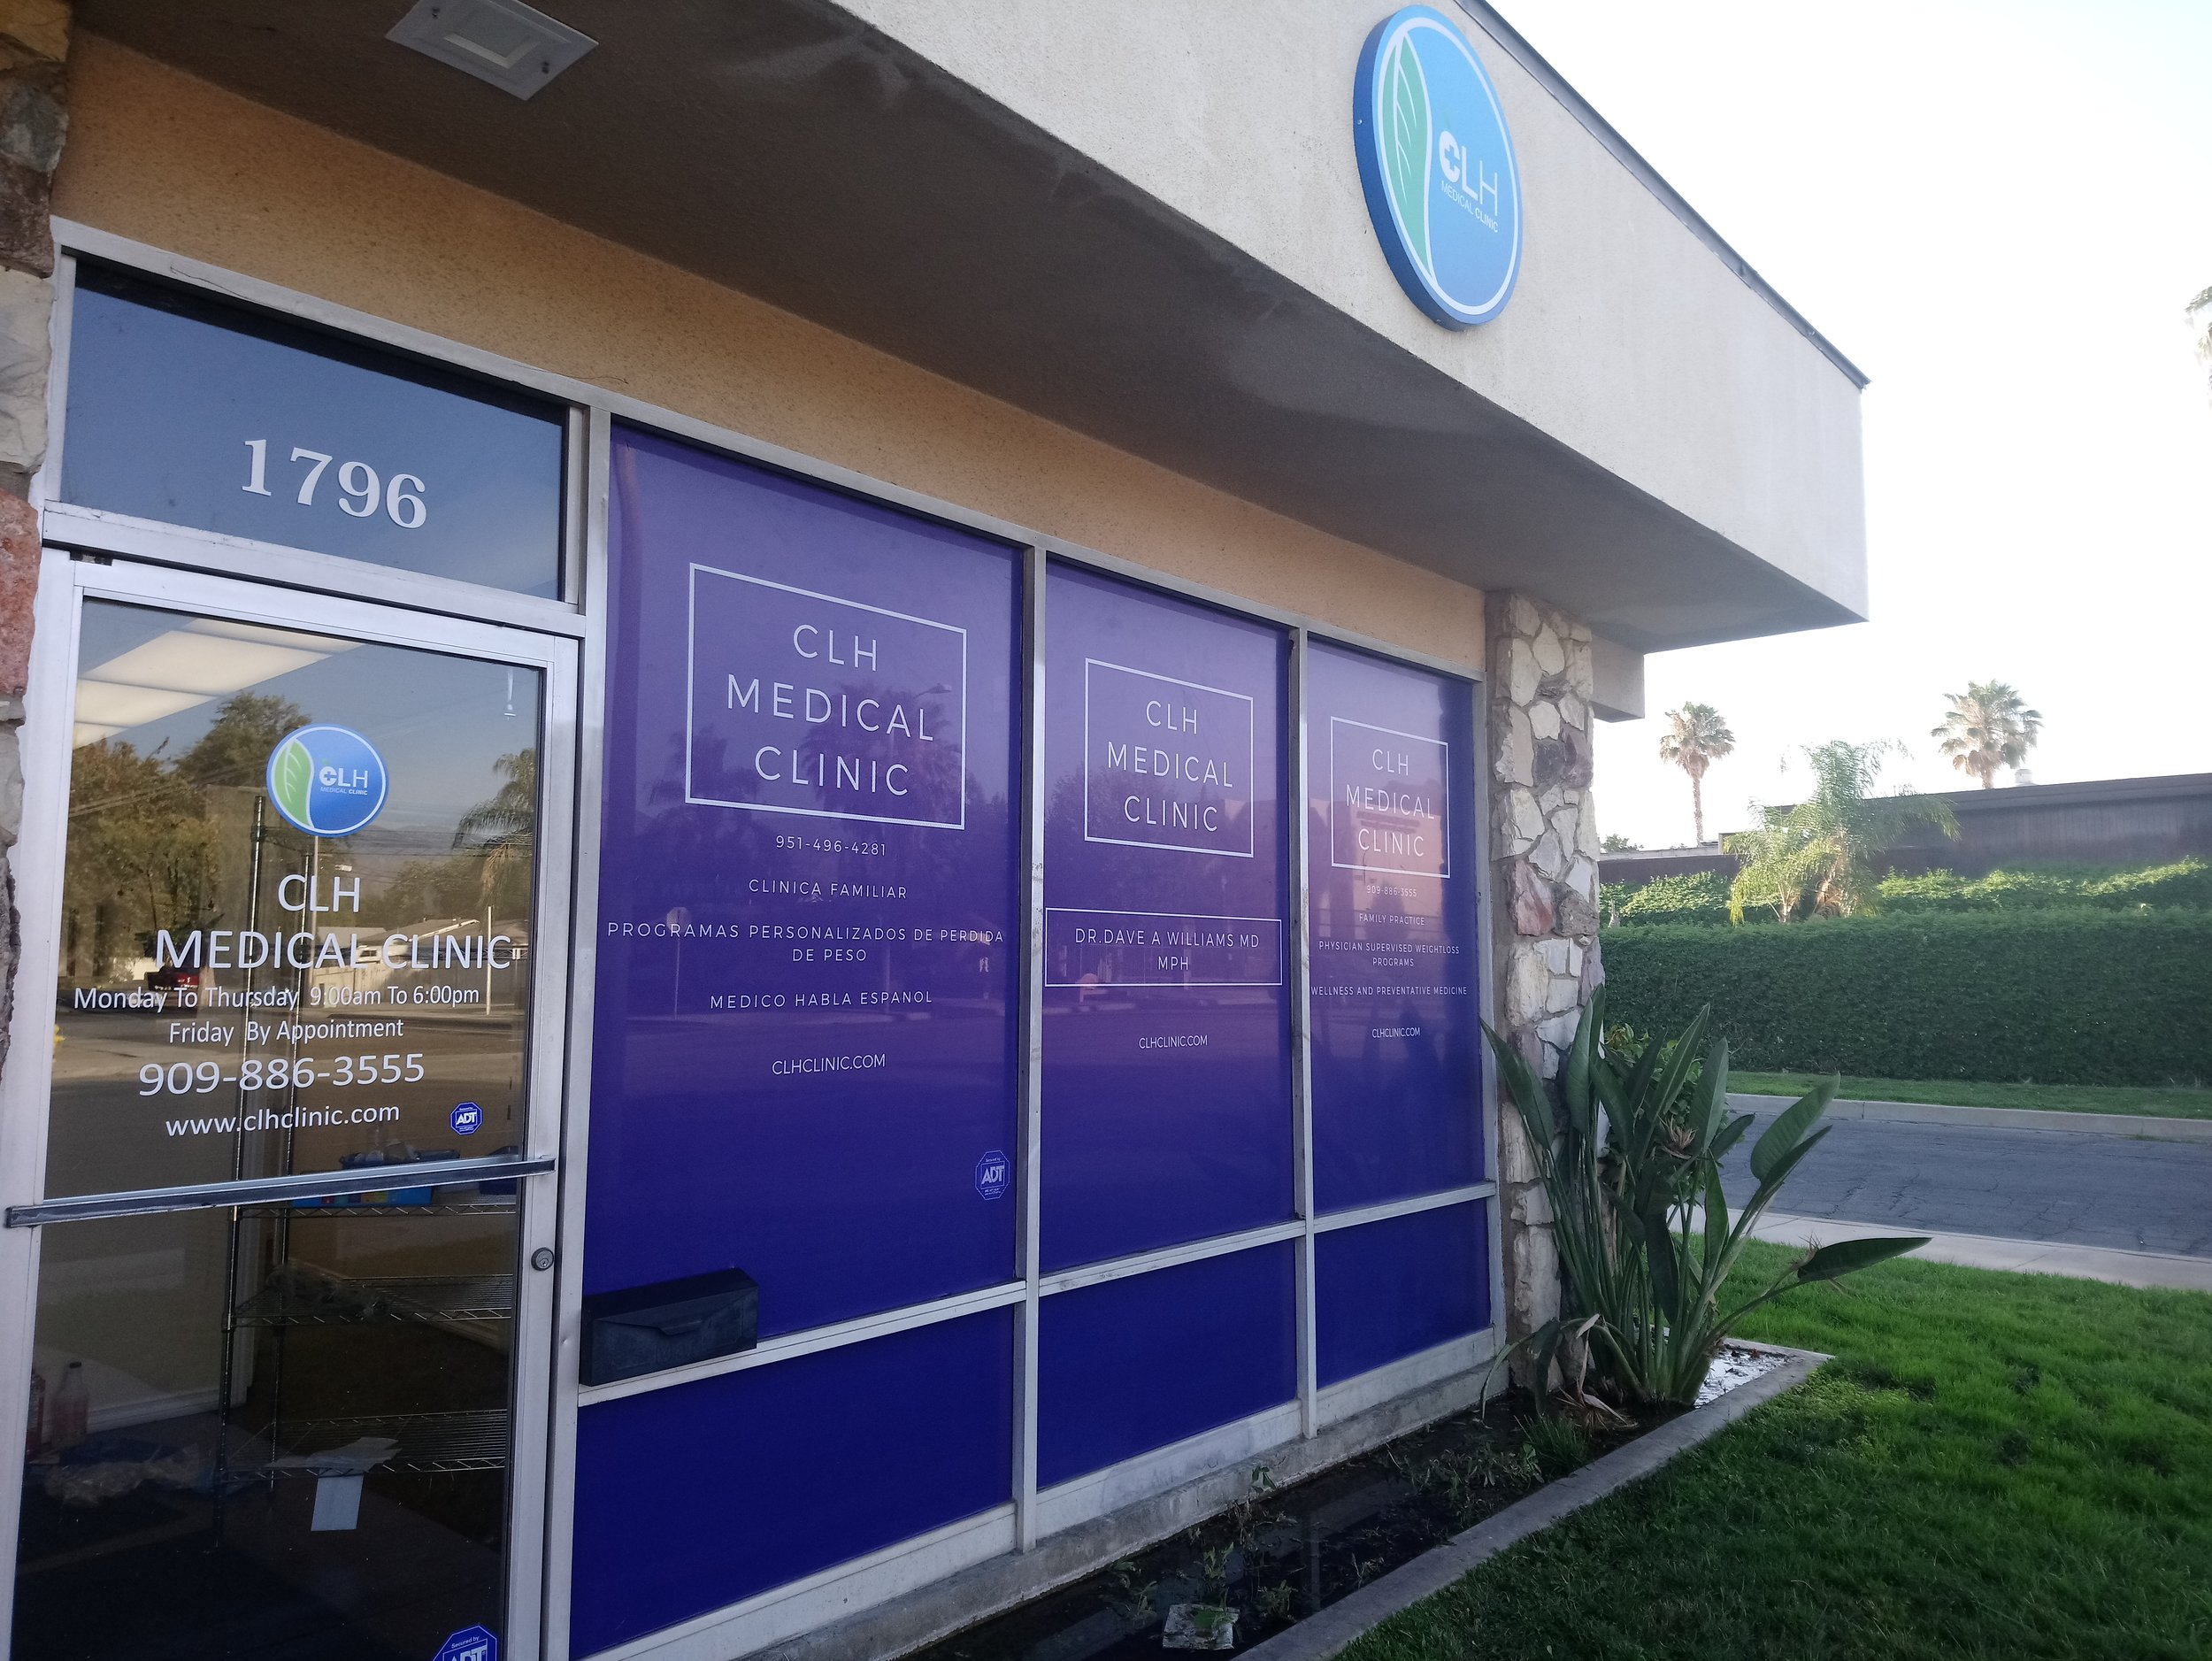 Our Practice - CLH Medical Clinic is dedicated to providing quality healthcare to our community and beyond.We are committed to improving your health and wellbeing